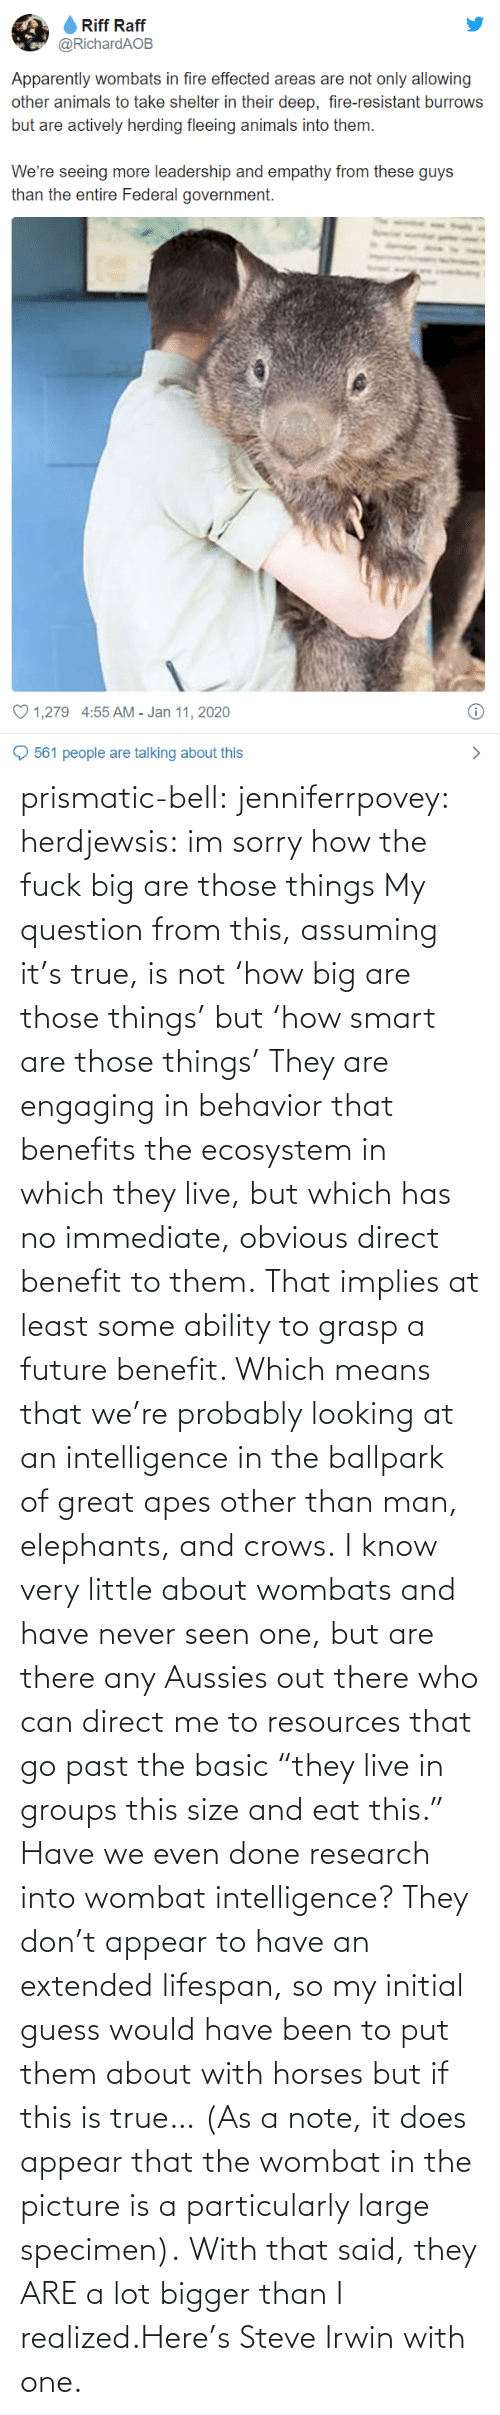 "About: prismatic-bell:  jenniferrpovey: herdjewsis: im sorry how the fuck big are those things My question from this, assuming it's true, is not 'how big are those things' but 'how smart are those things' They are engaging in behavior that benefits the ecosystem in which they live, but which has no immediate, obvious direct benefit to them. That implies at least some ability to grasp a future benefit. Which means that we're probably looking at an intelligence in the ballpark of great apes other than man, elephants, and crows. I know very little about wombats and have never seen one, but are there any Aussies out there who can direct me to resources that go past the basic ""they live in groups this size and eat this."" Have we even done research into wombat intelligence? They don't appear to have an extended lifespan, so my initial guess would have been to put them about with horses but if this is true… (As a note, it does appear that the wombat in the picture is a particularly large specimen).  With that said, they ARE a lot bigger than I realized.Here's Steve Irwin with one."